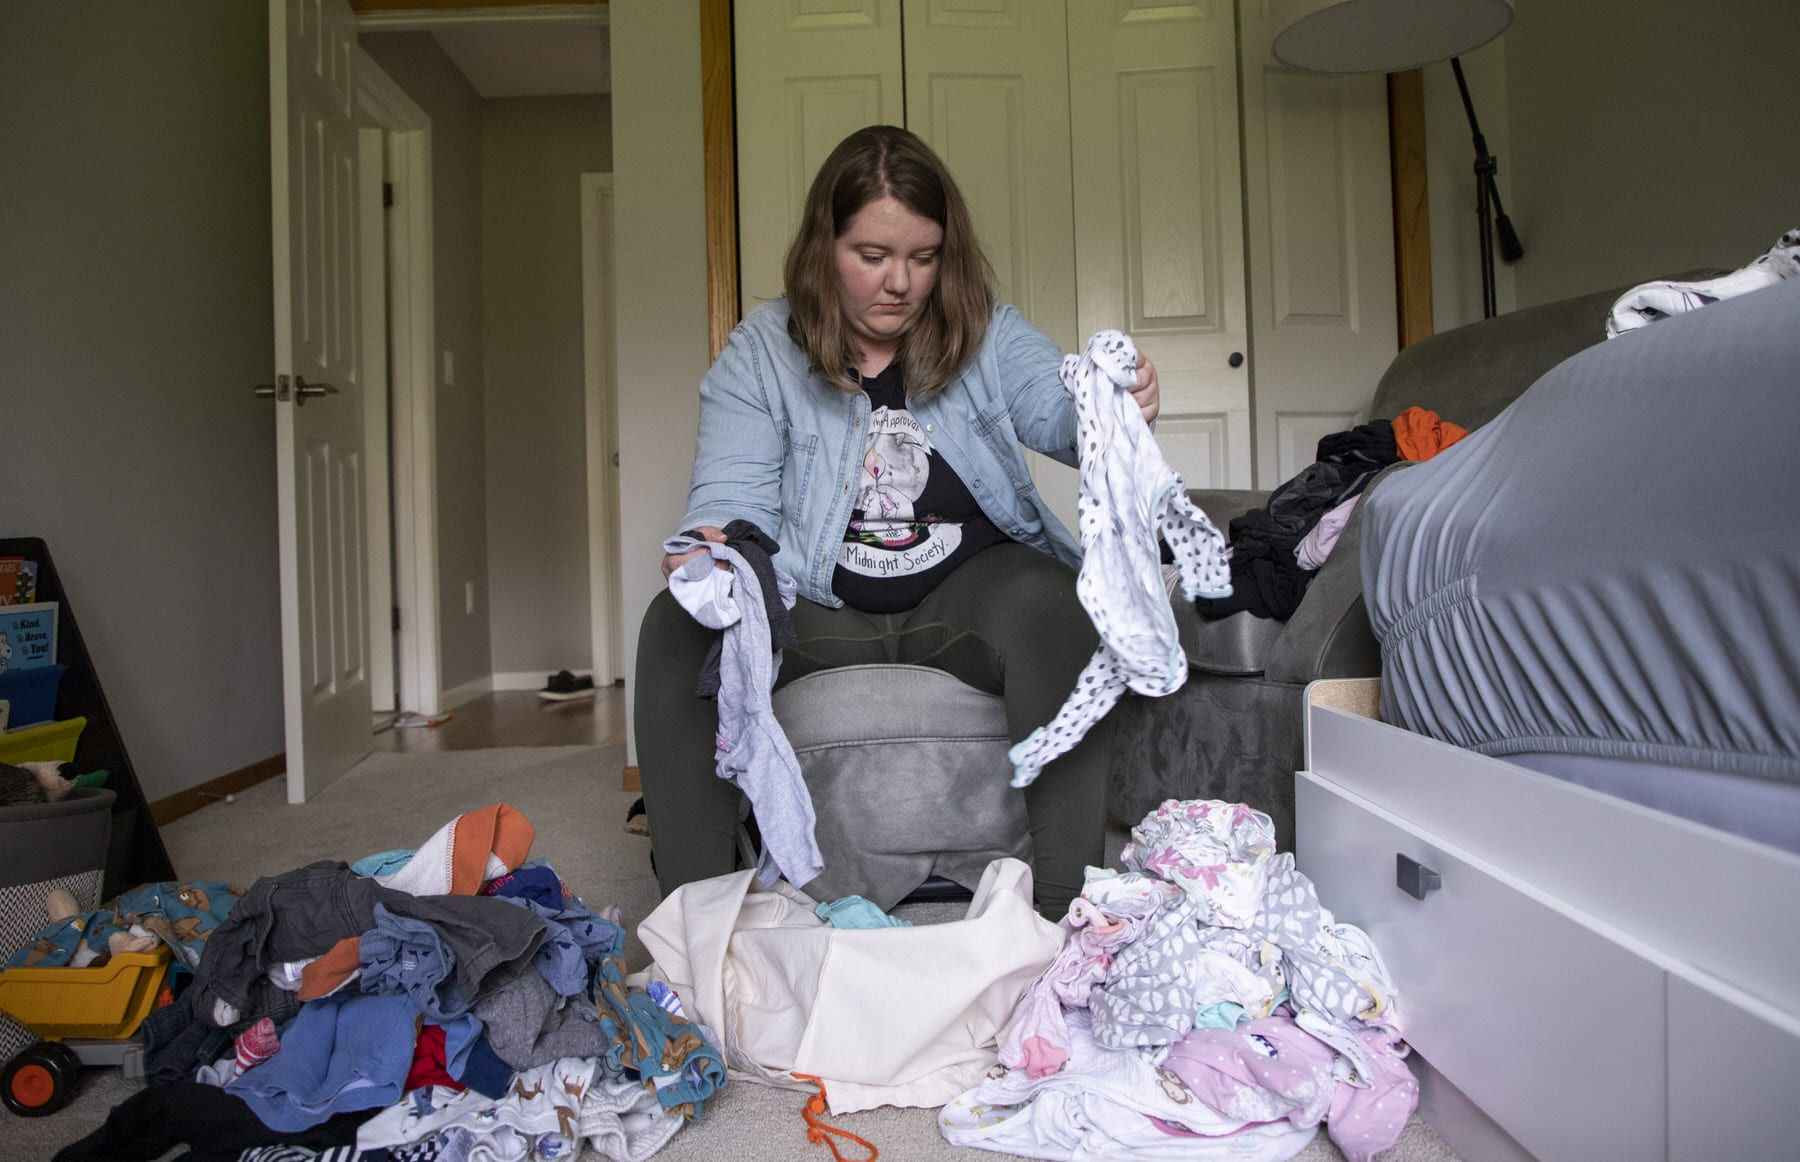 A mother sorts through laundry.